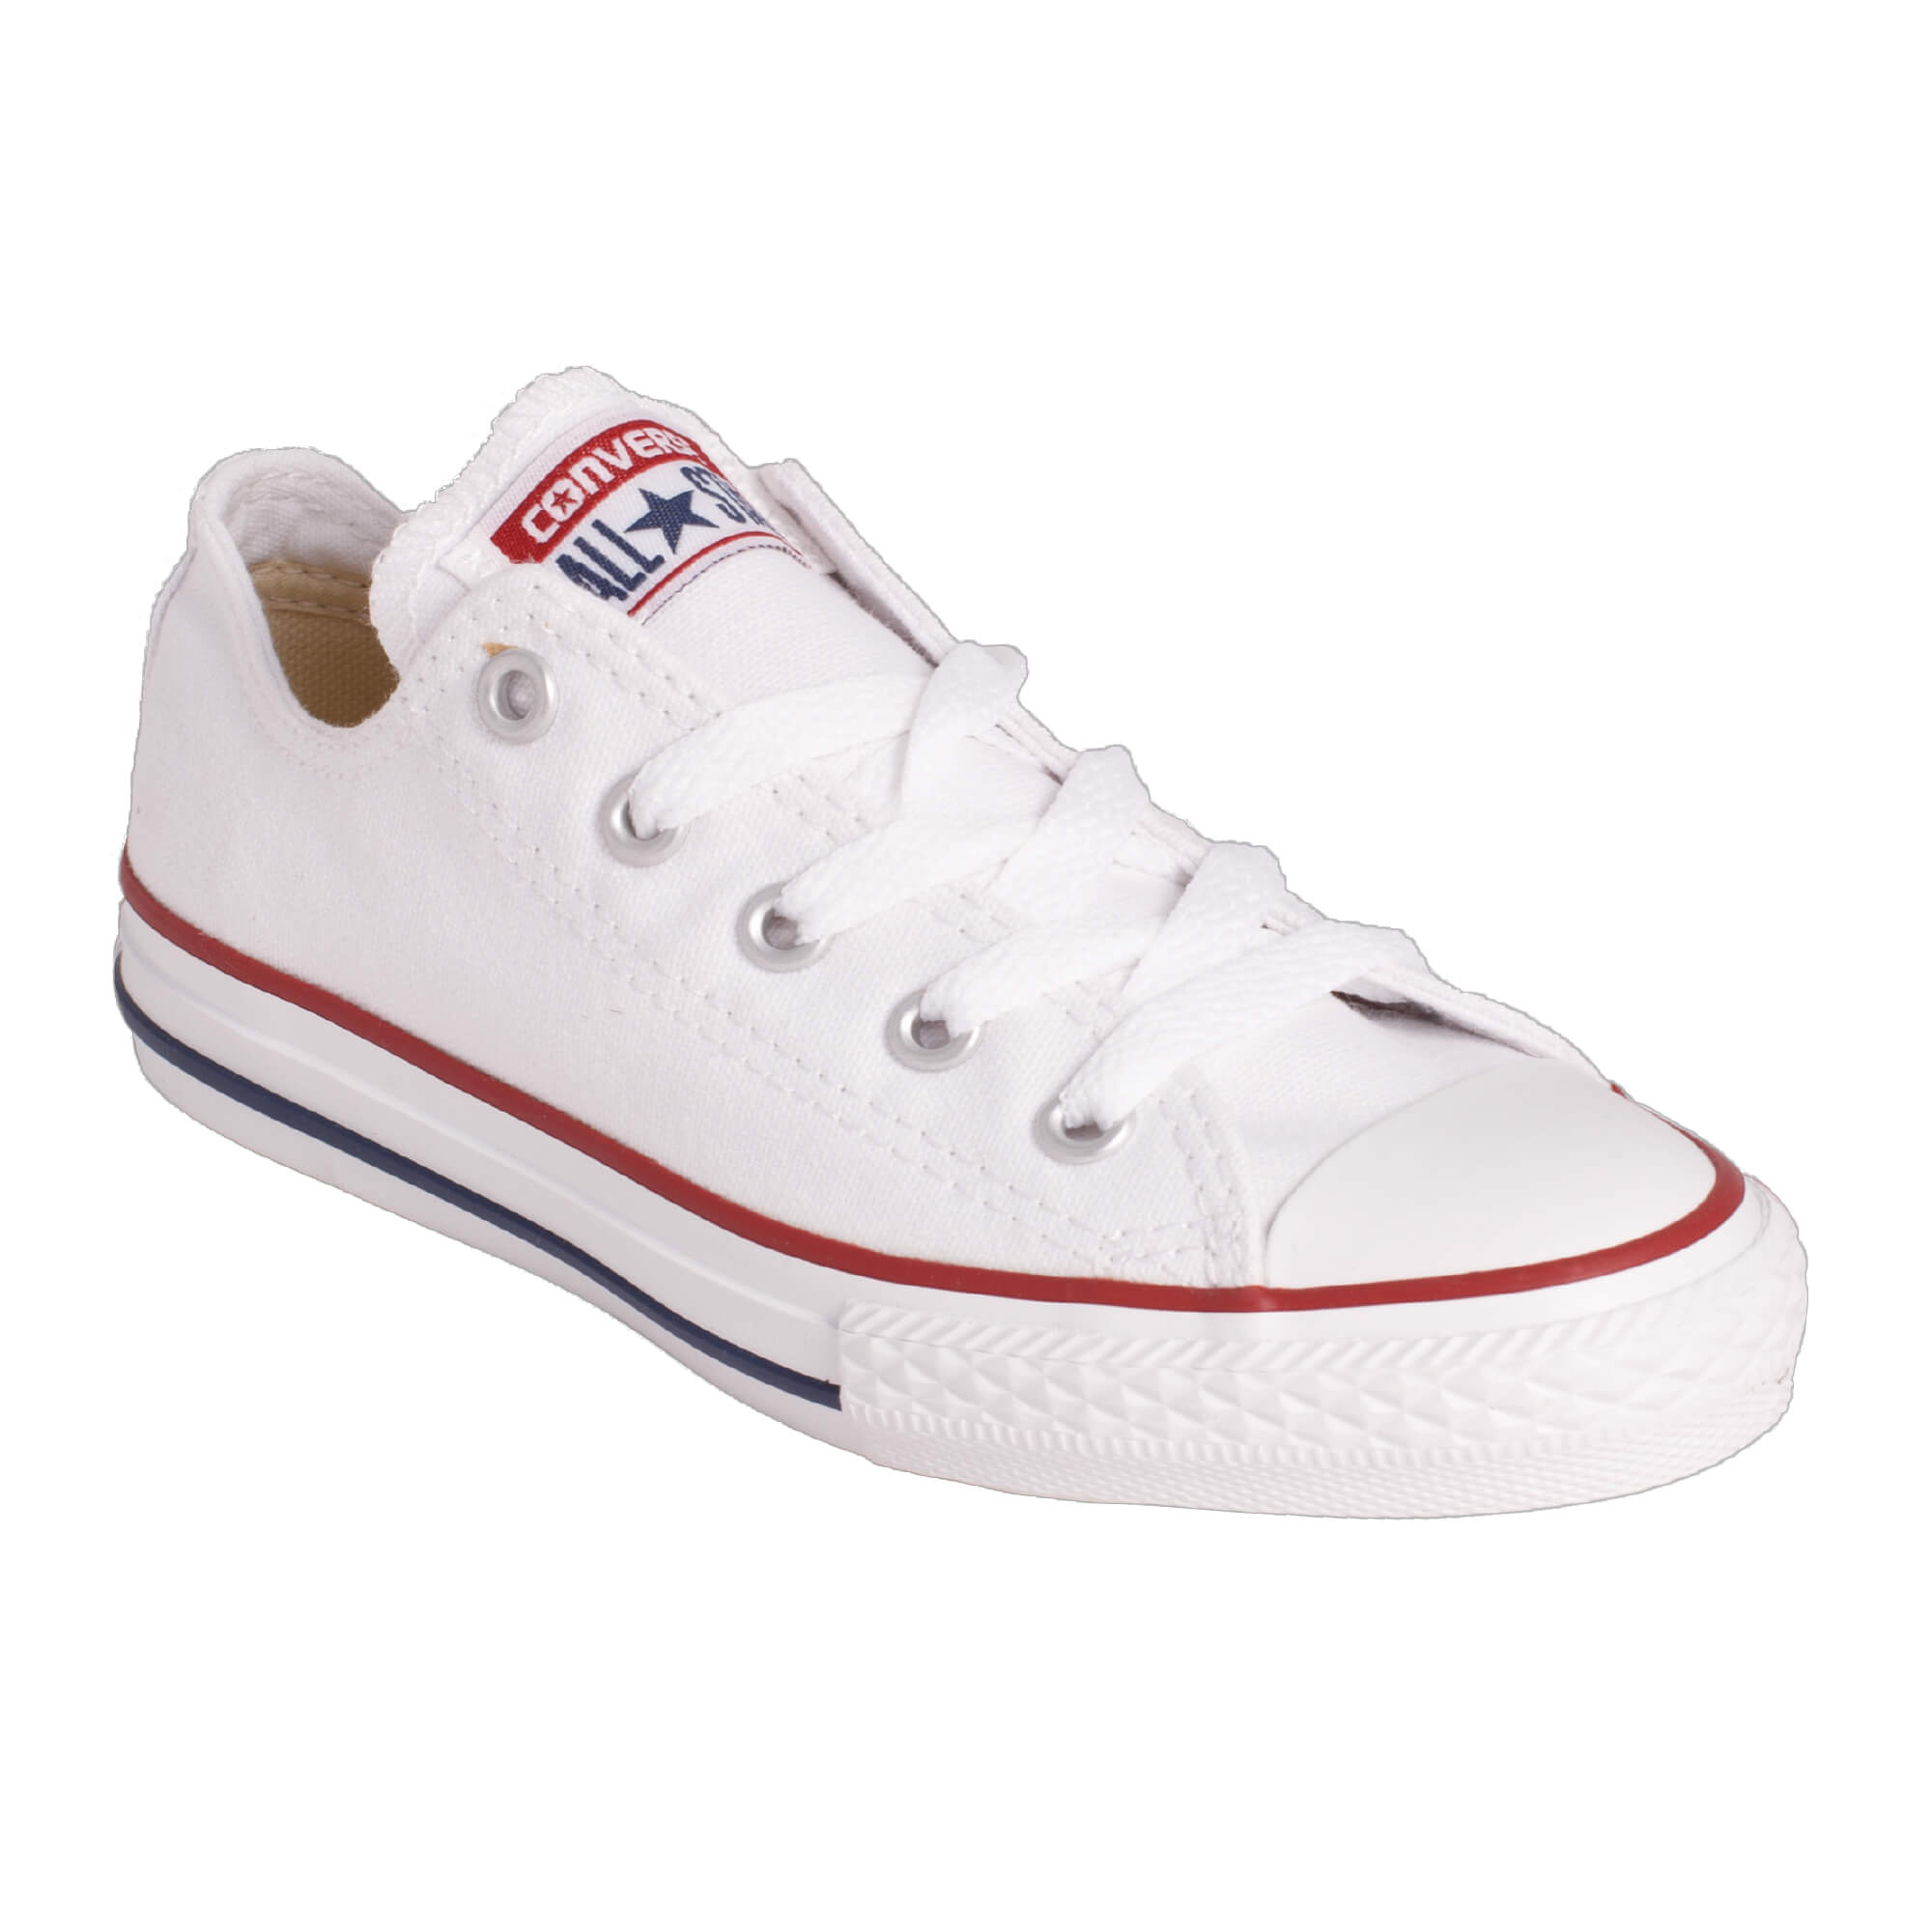 Chuck Taylor All Star Converse poza